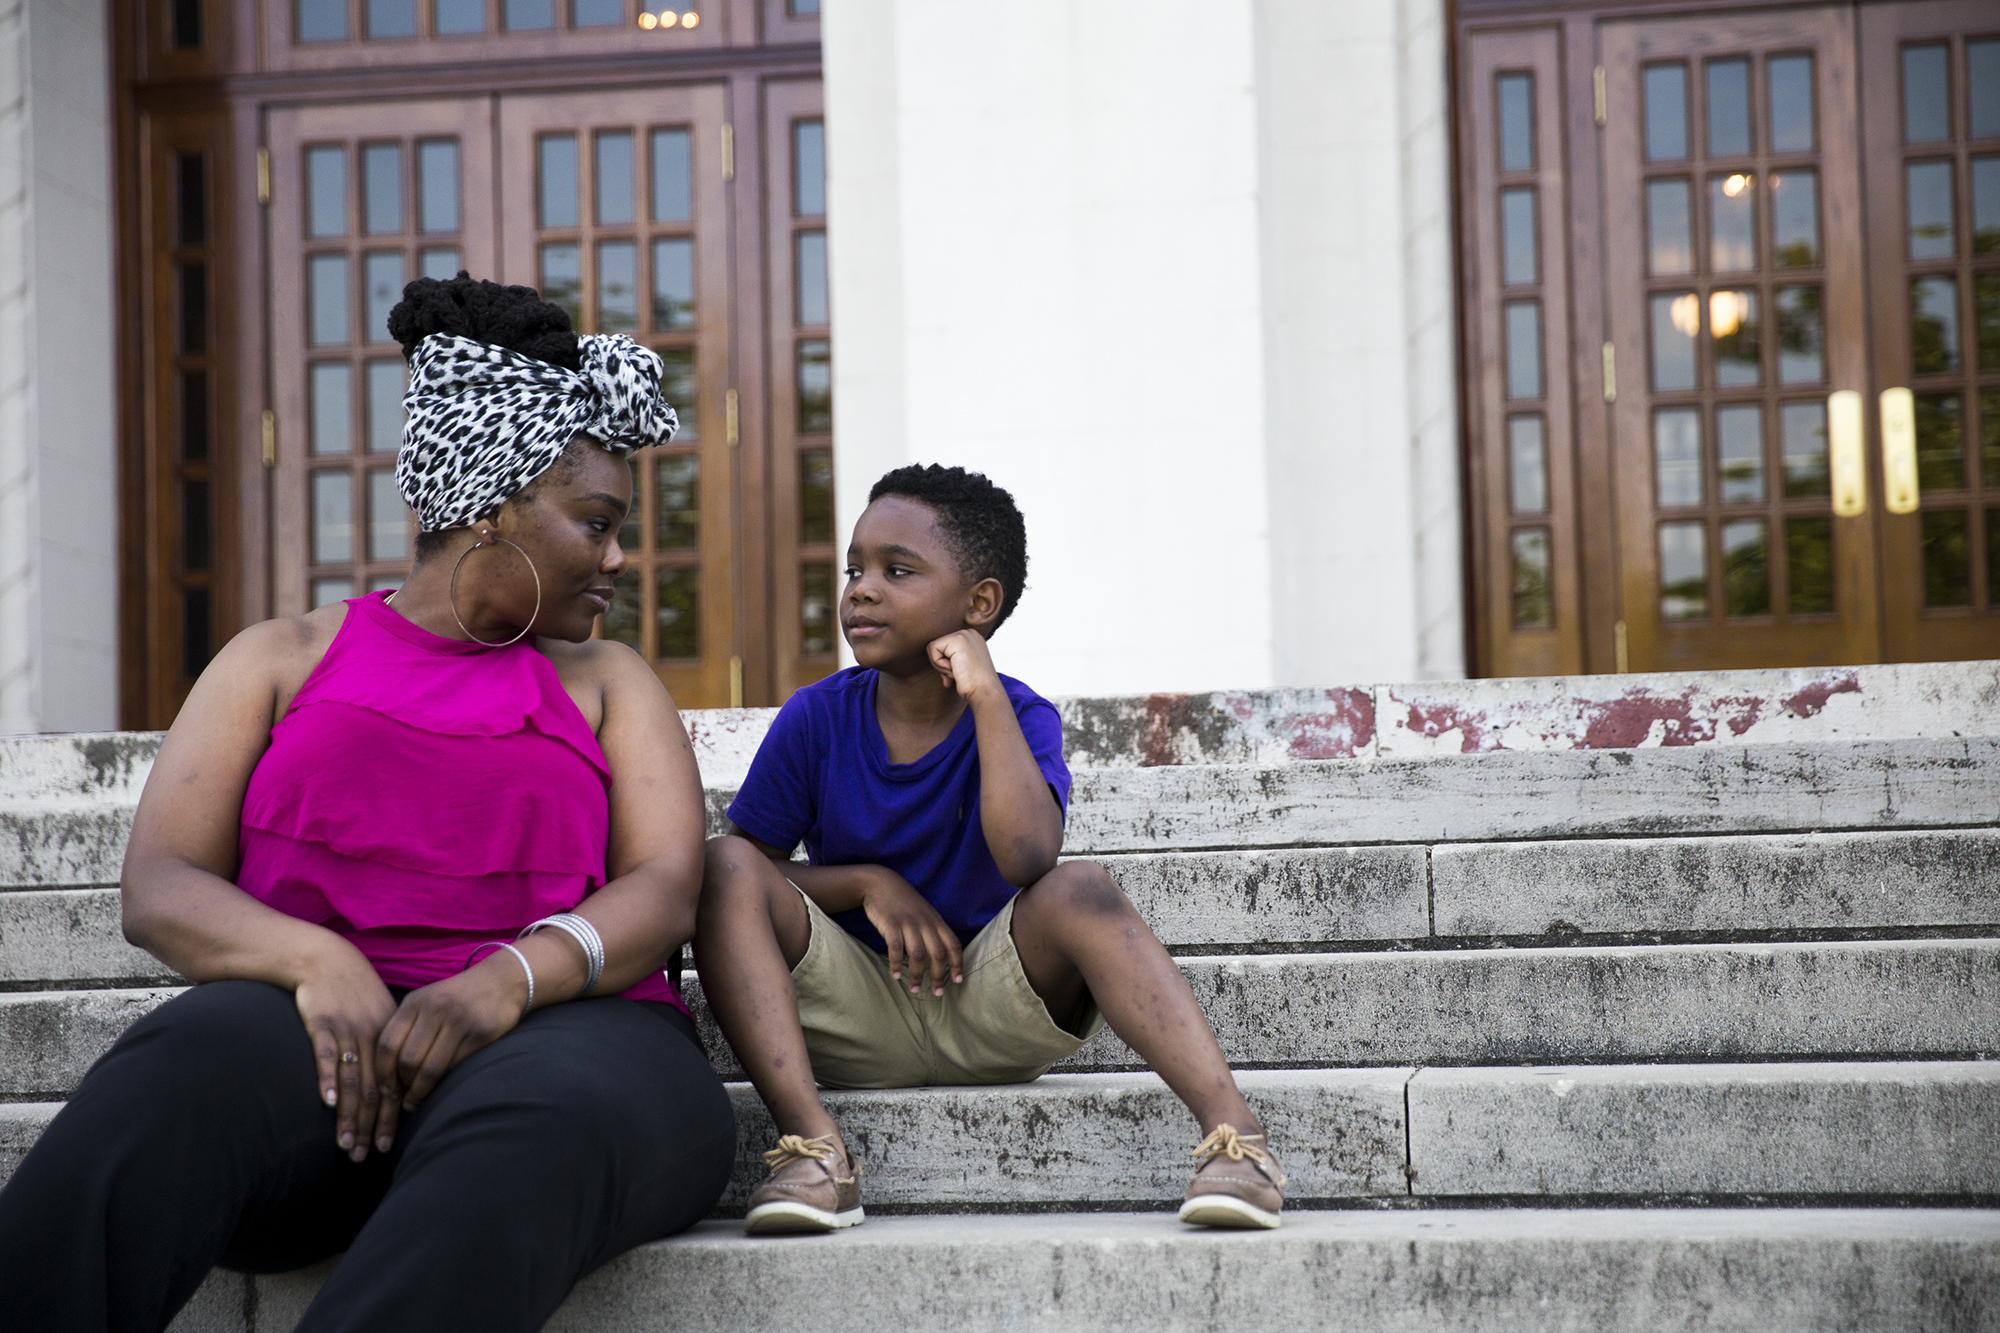 Isis Pettway and her son Caleb sit on the steps of historic Little Rock Central High School, one of the 48 Little Rock schools that Arkansas took control of in 2015. Pettway graduated from the school in 2000 and now sends her 7-year-old son to one of the city's elementary schools. (Natalie Griffin/News21)